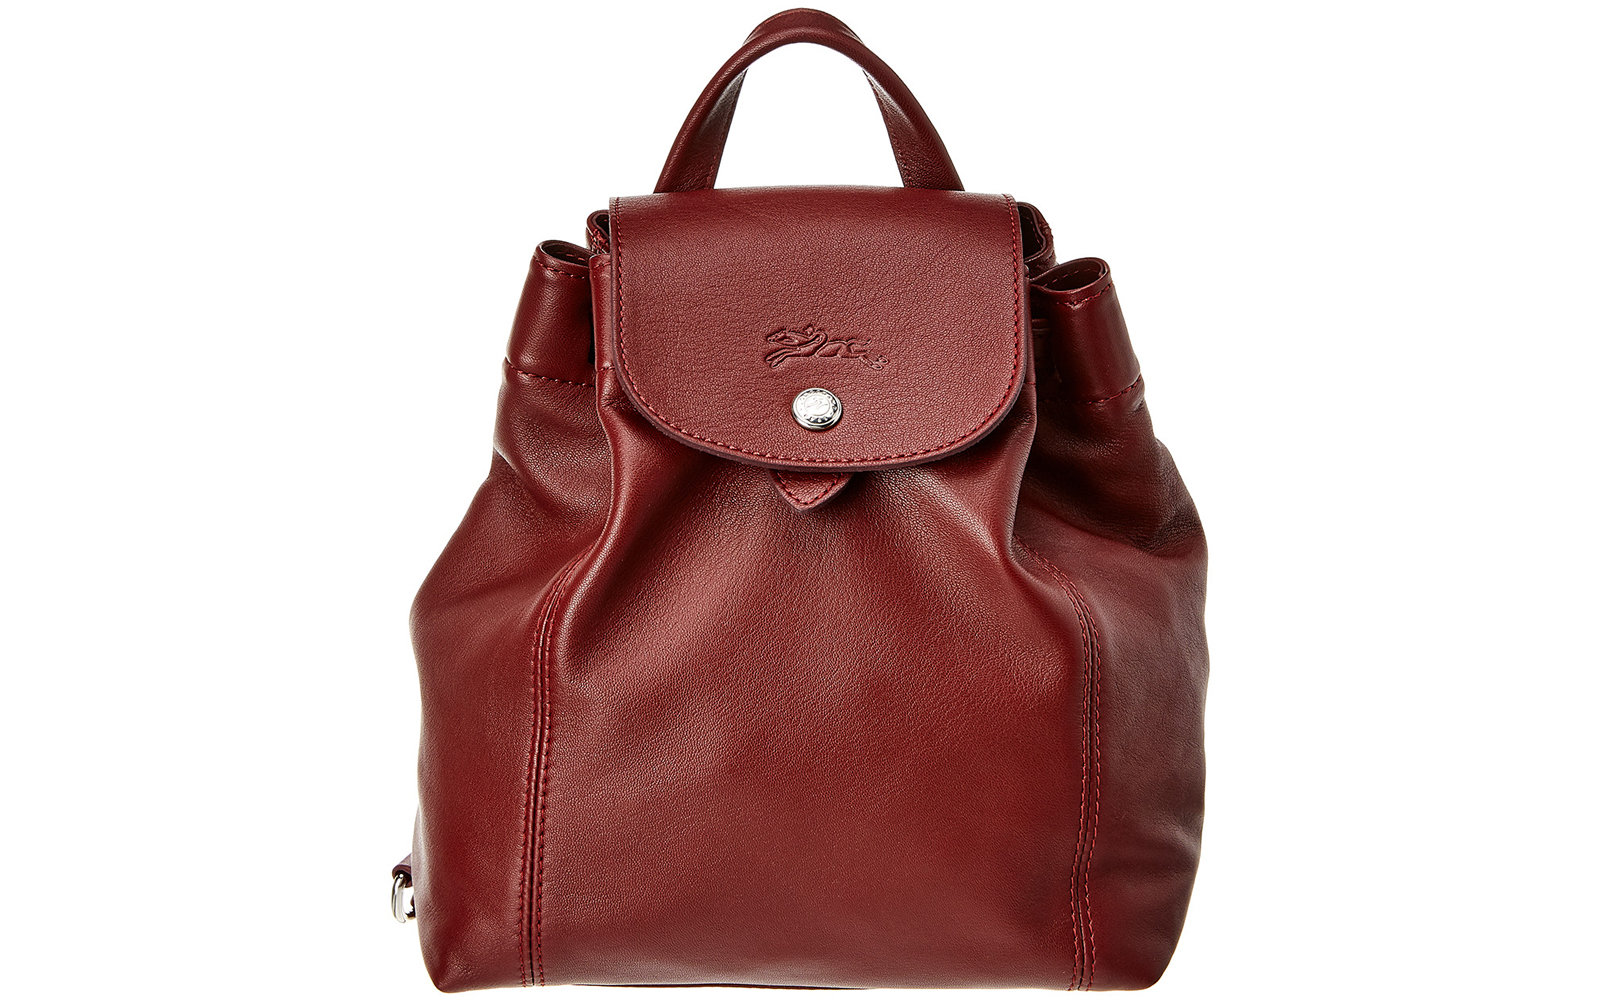 Longchamp Le Pliage Cuir XS Leather Backpack in Red